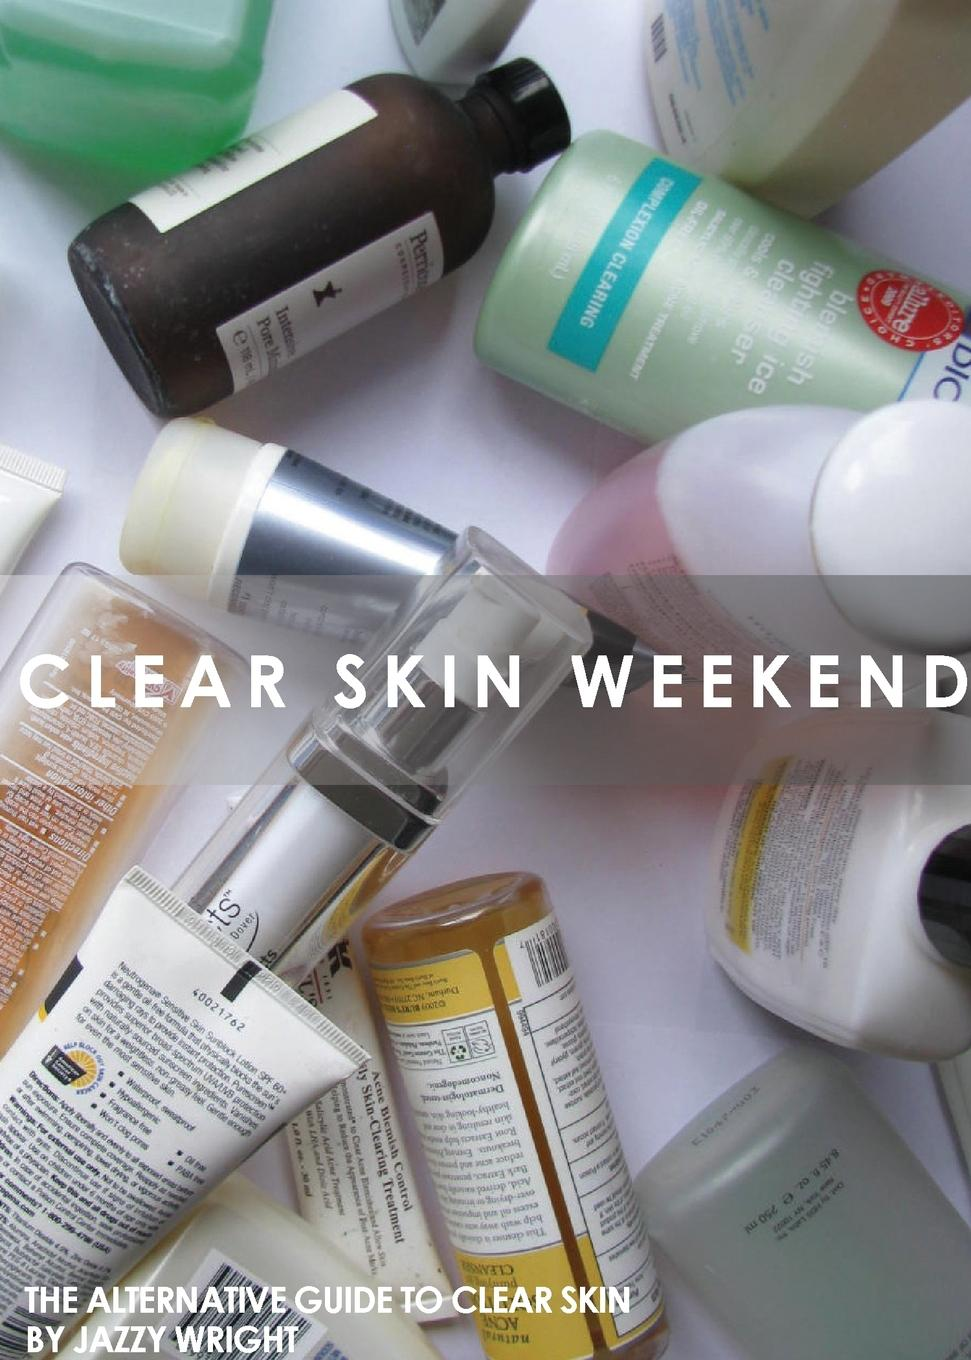 Clear Skin Weekend Print Book